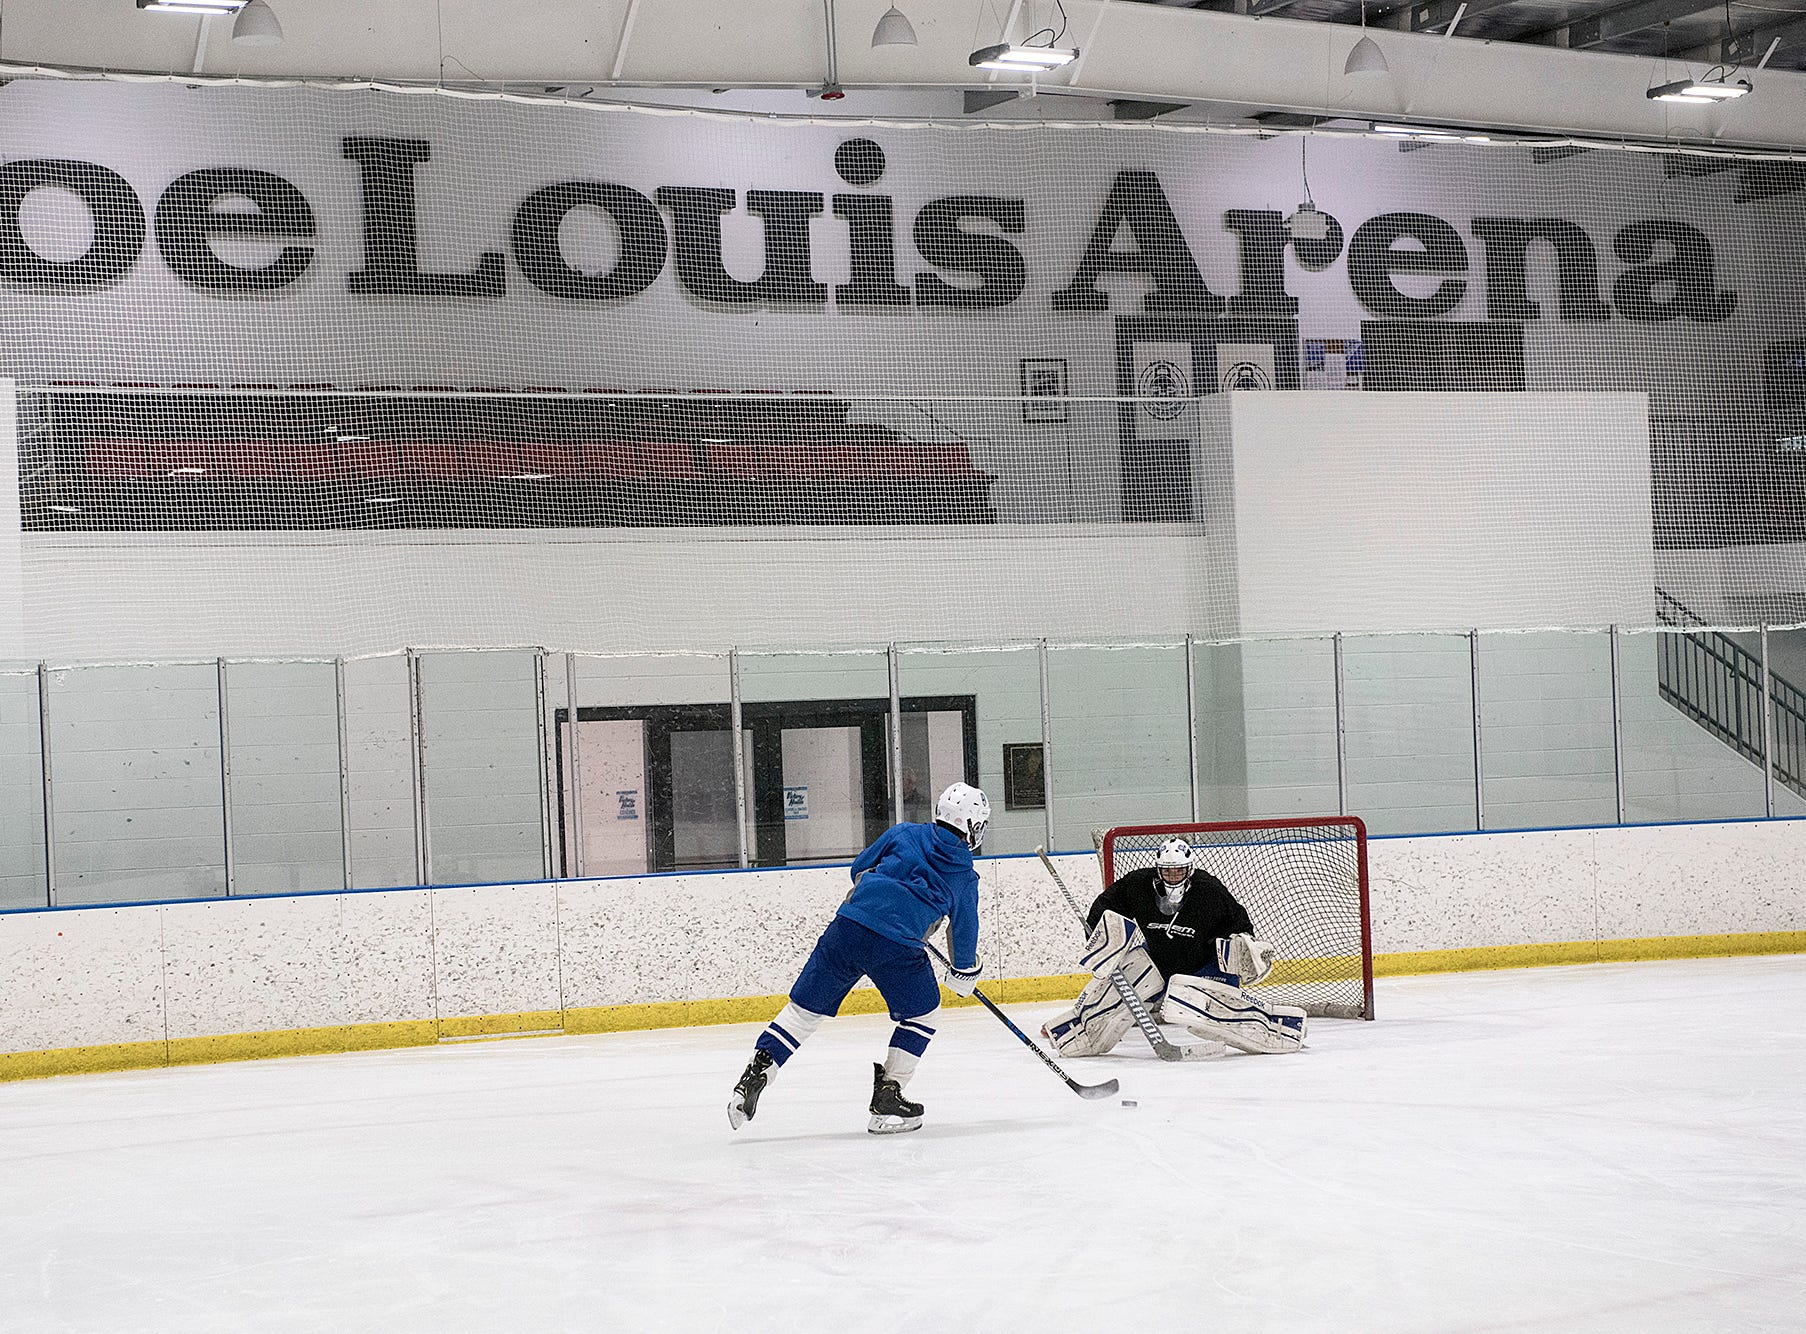 The new rink features a sign and seating from Joe Louis Arena.